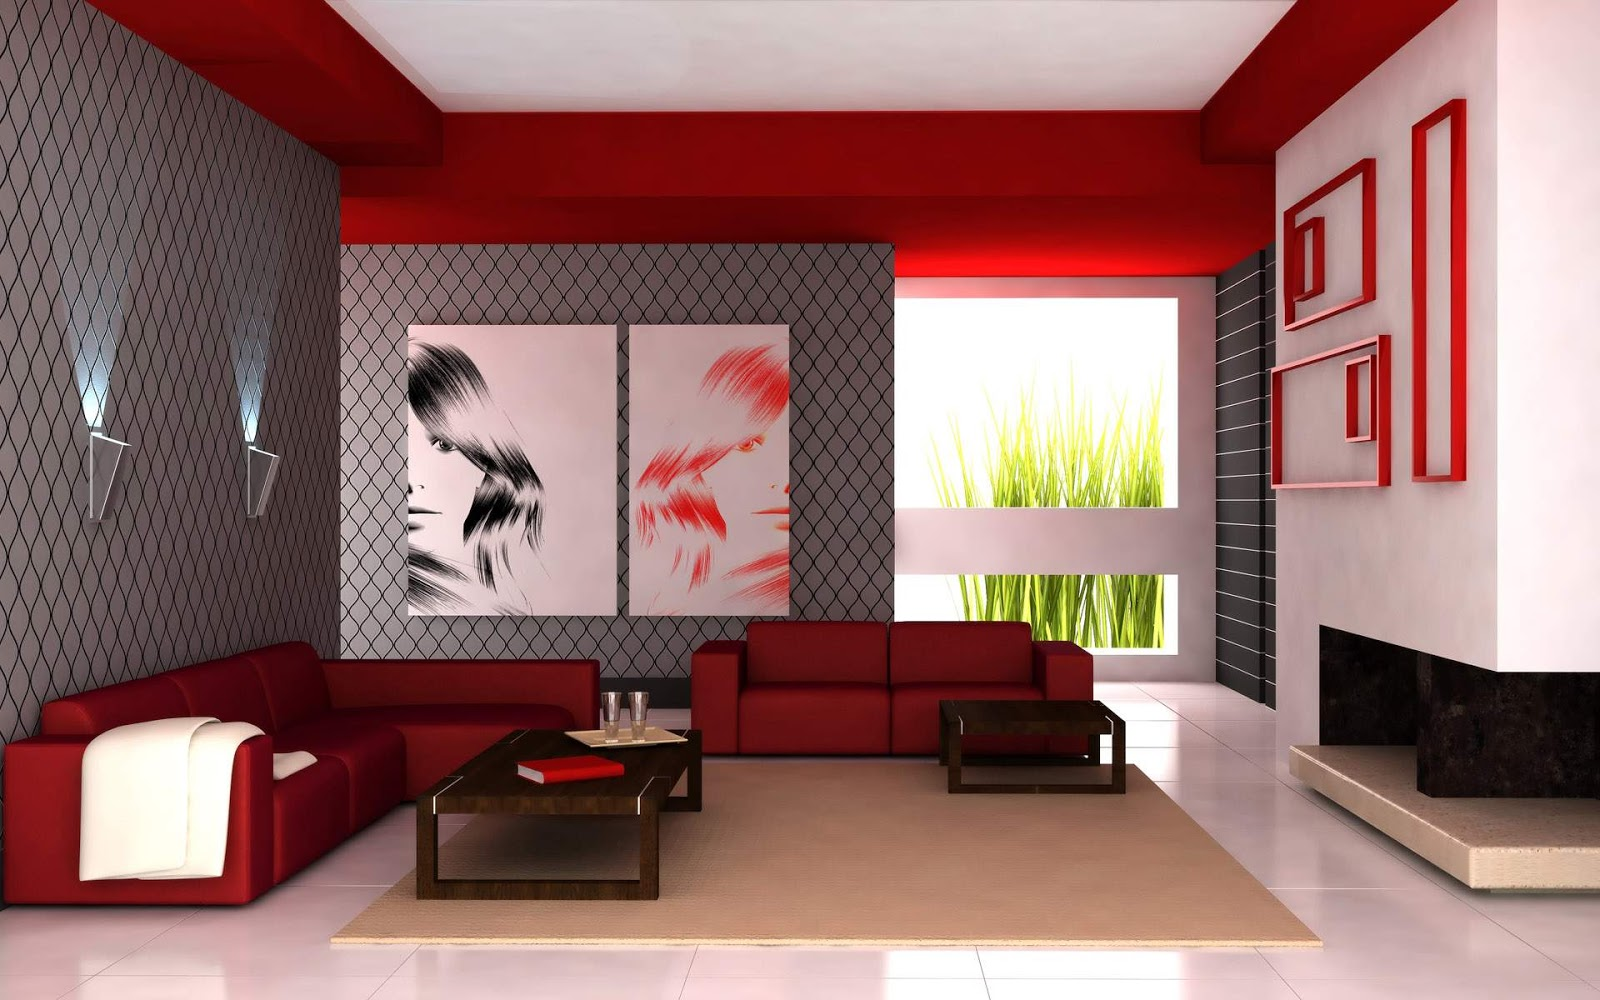 Home decoration design modern and latest interior design trends for 2012 pictures Contemporary interior home design ideas